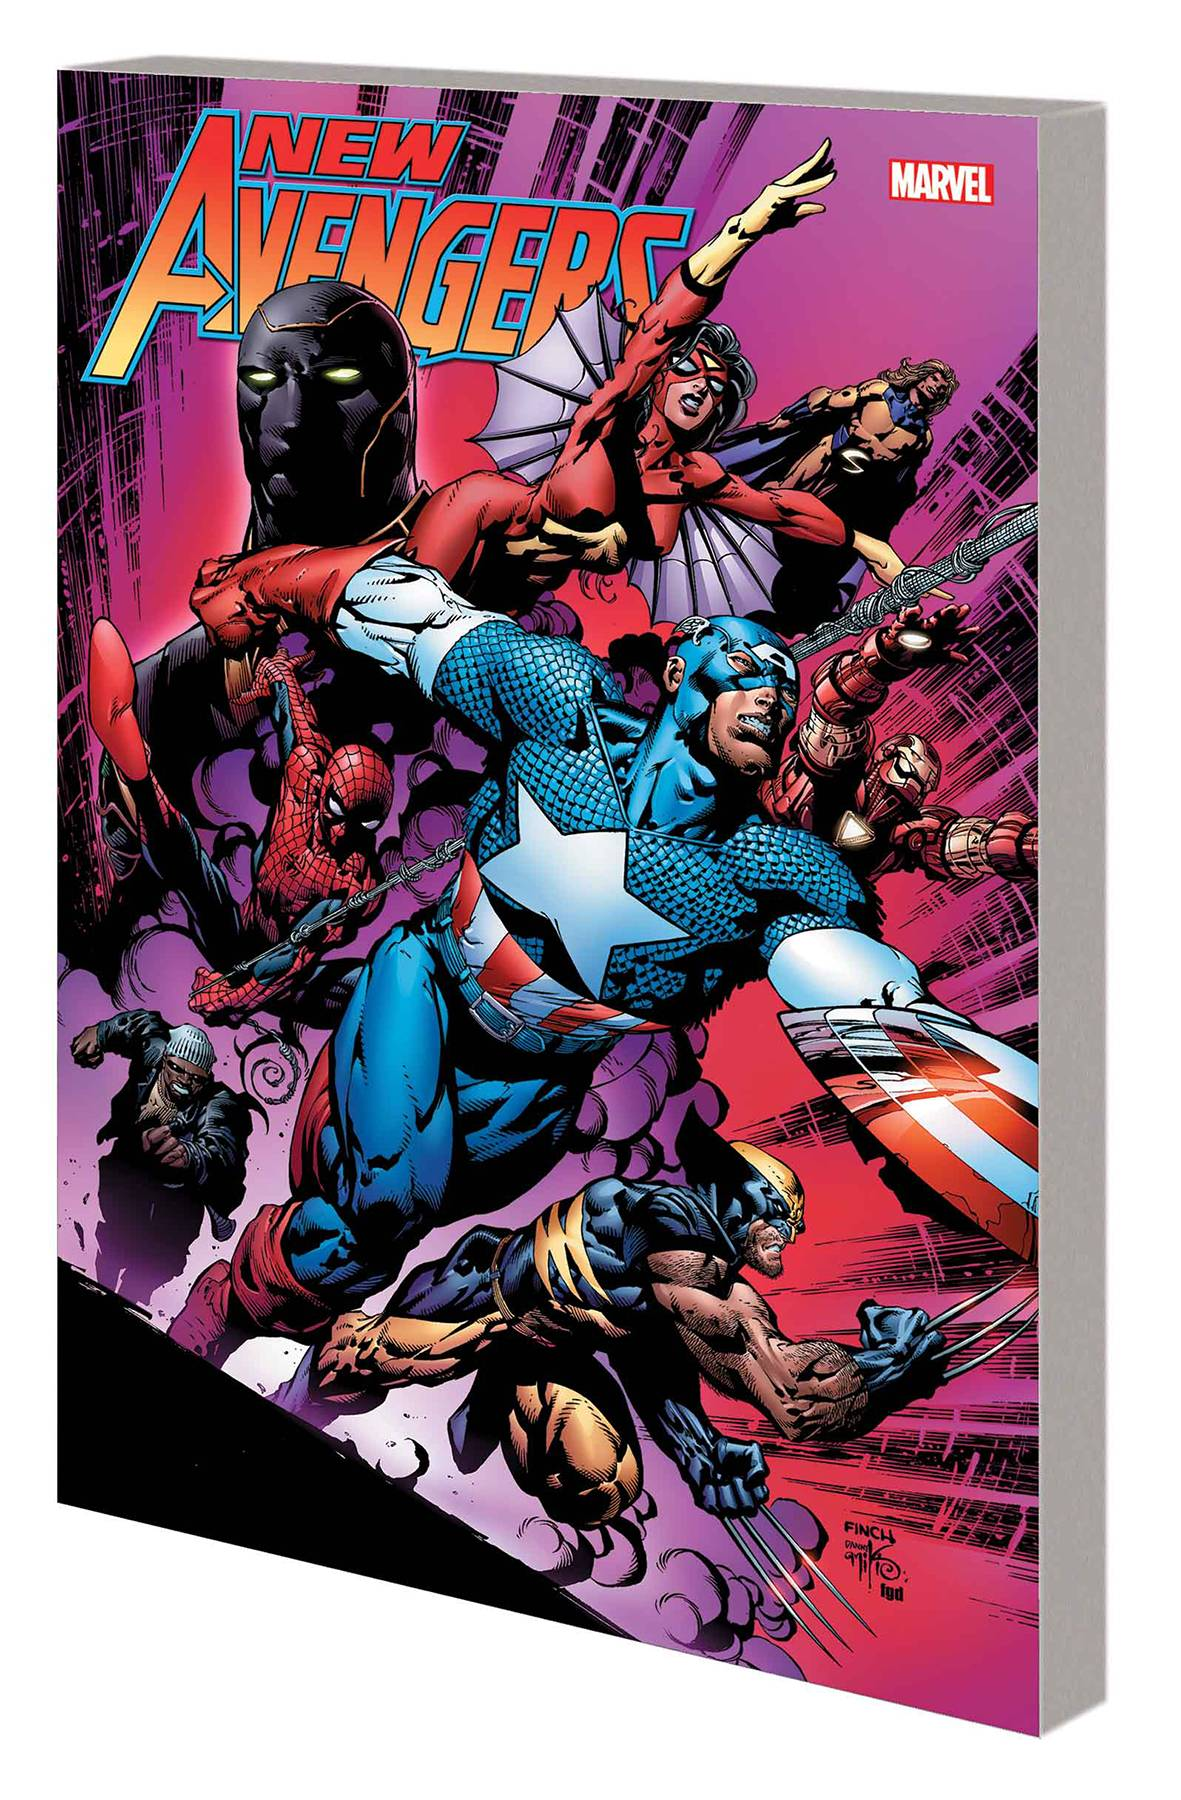 NEW AVENGERS BY BRIAN MICHAEL BENDIS: THE COMPLETE COLLECTION VOL 02